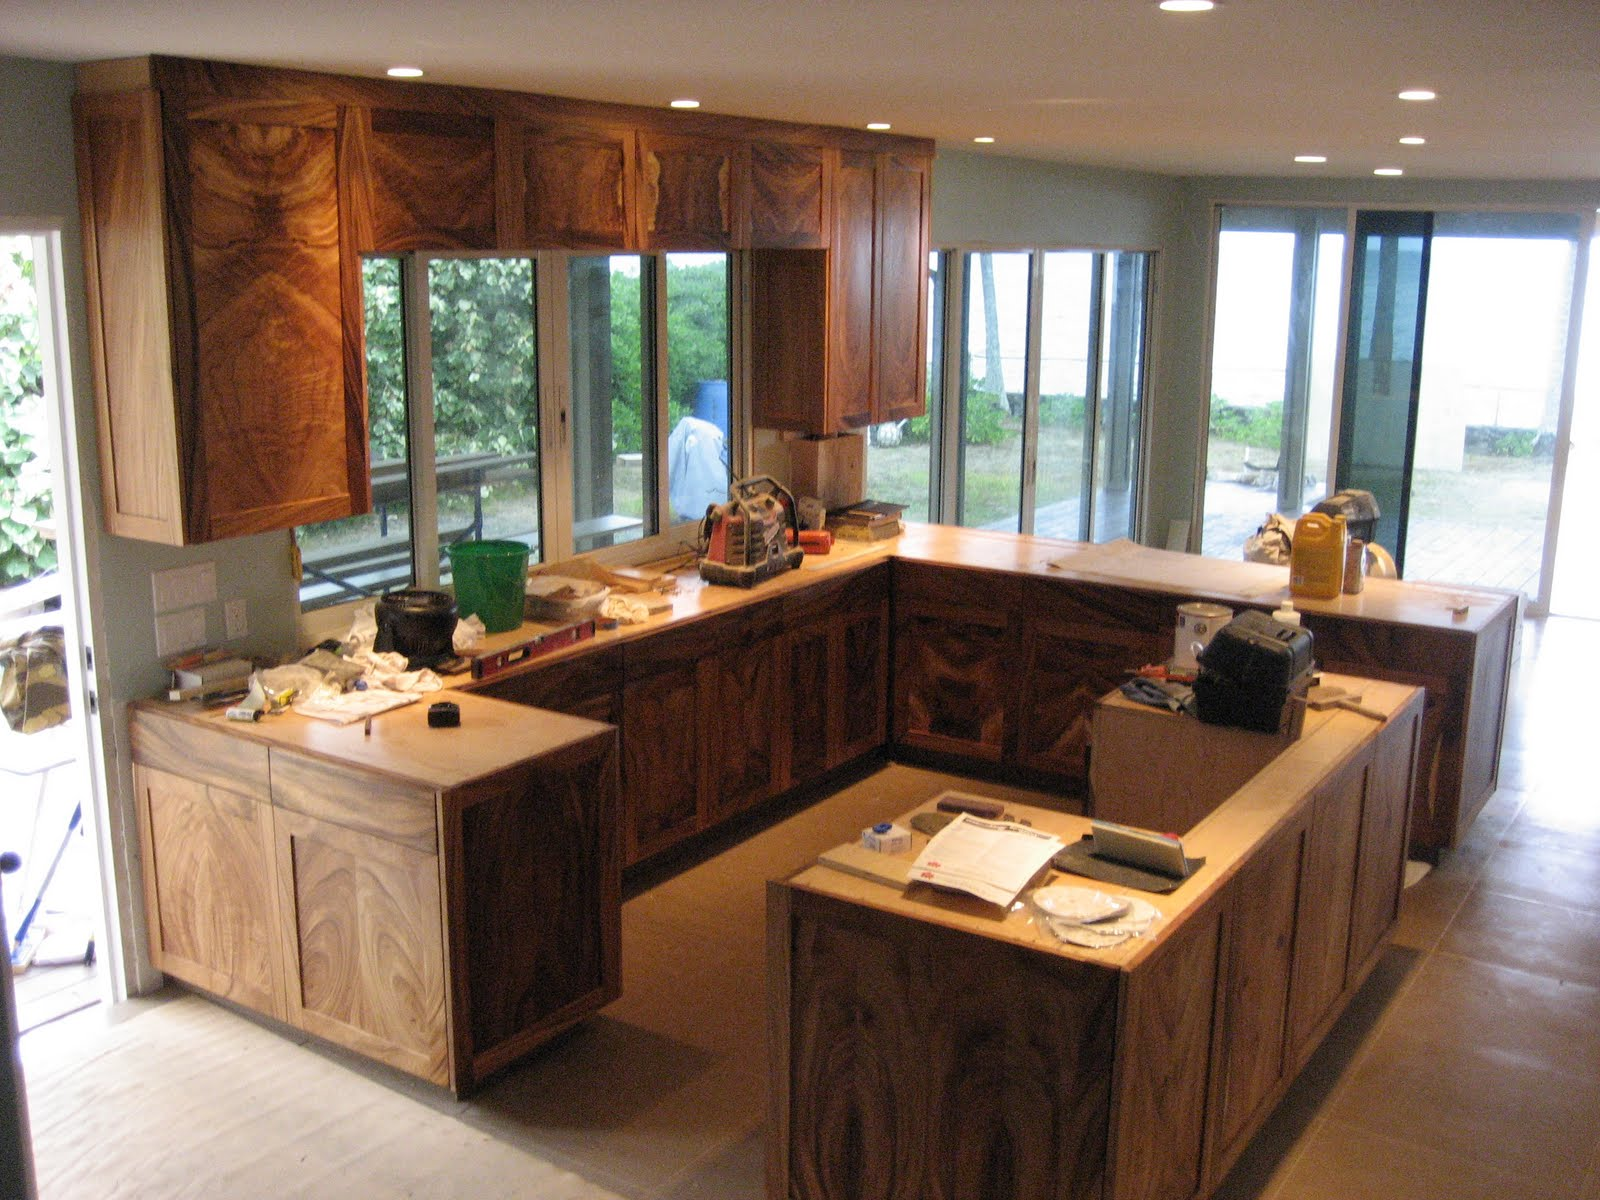 german kitchen kaneohe hi german kitchen cabinets German Kitchen Kaneohe HI Monkeypod Shaker